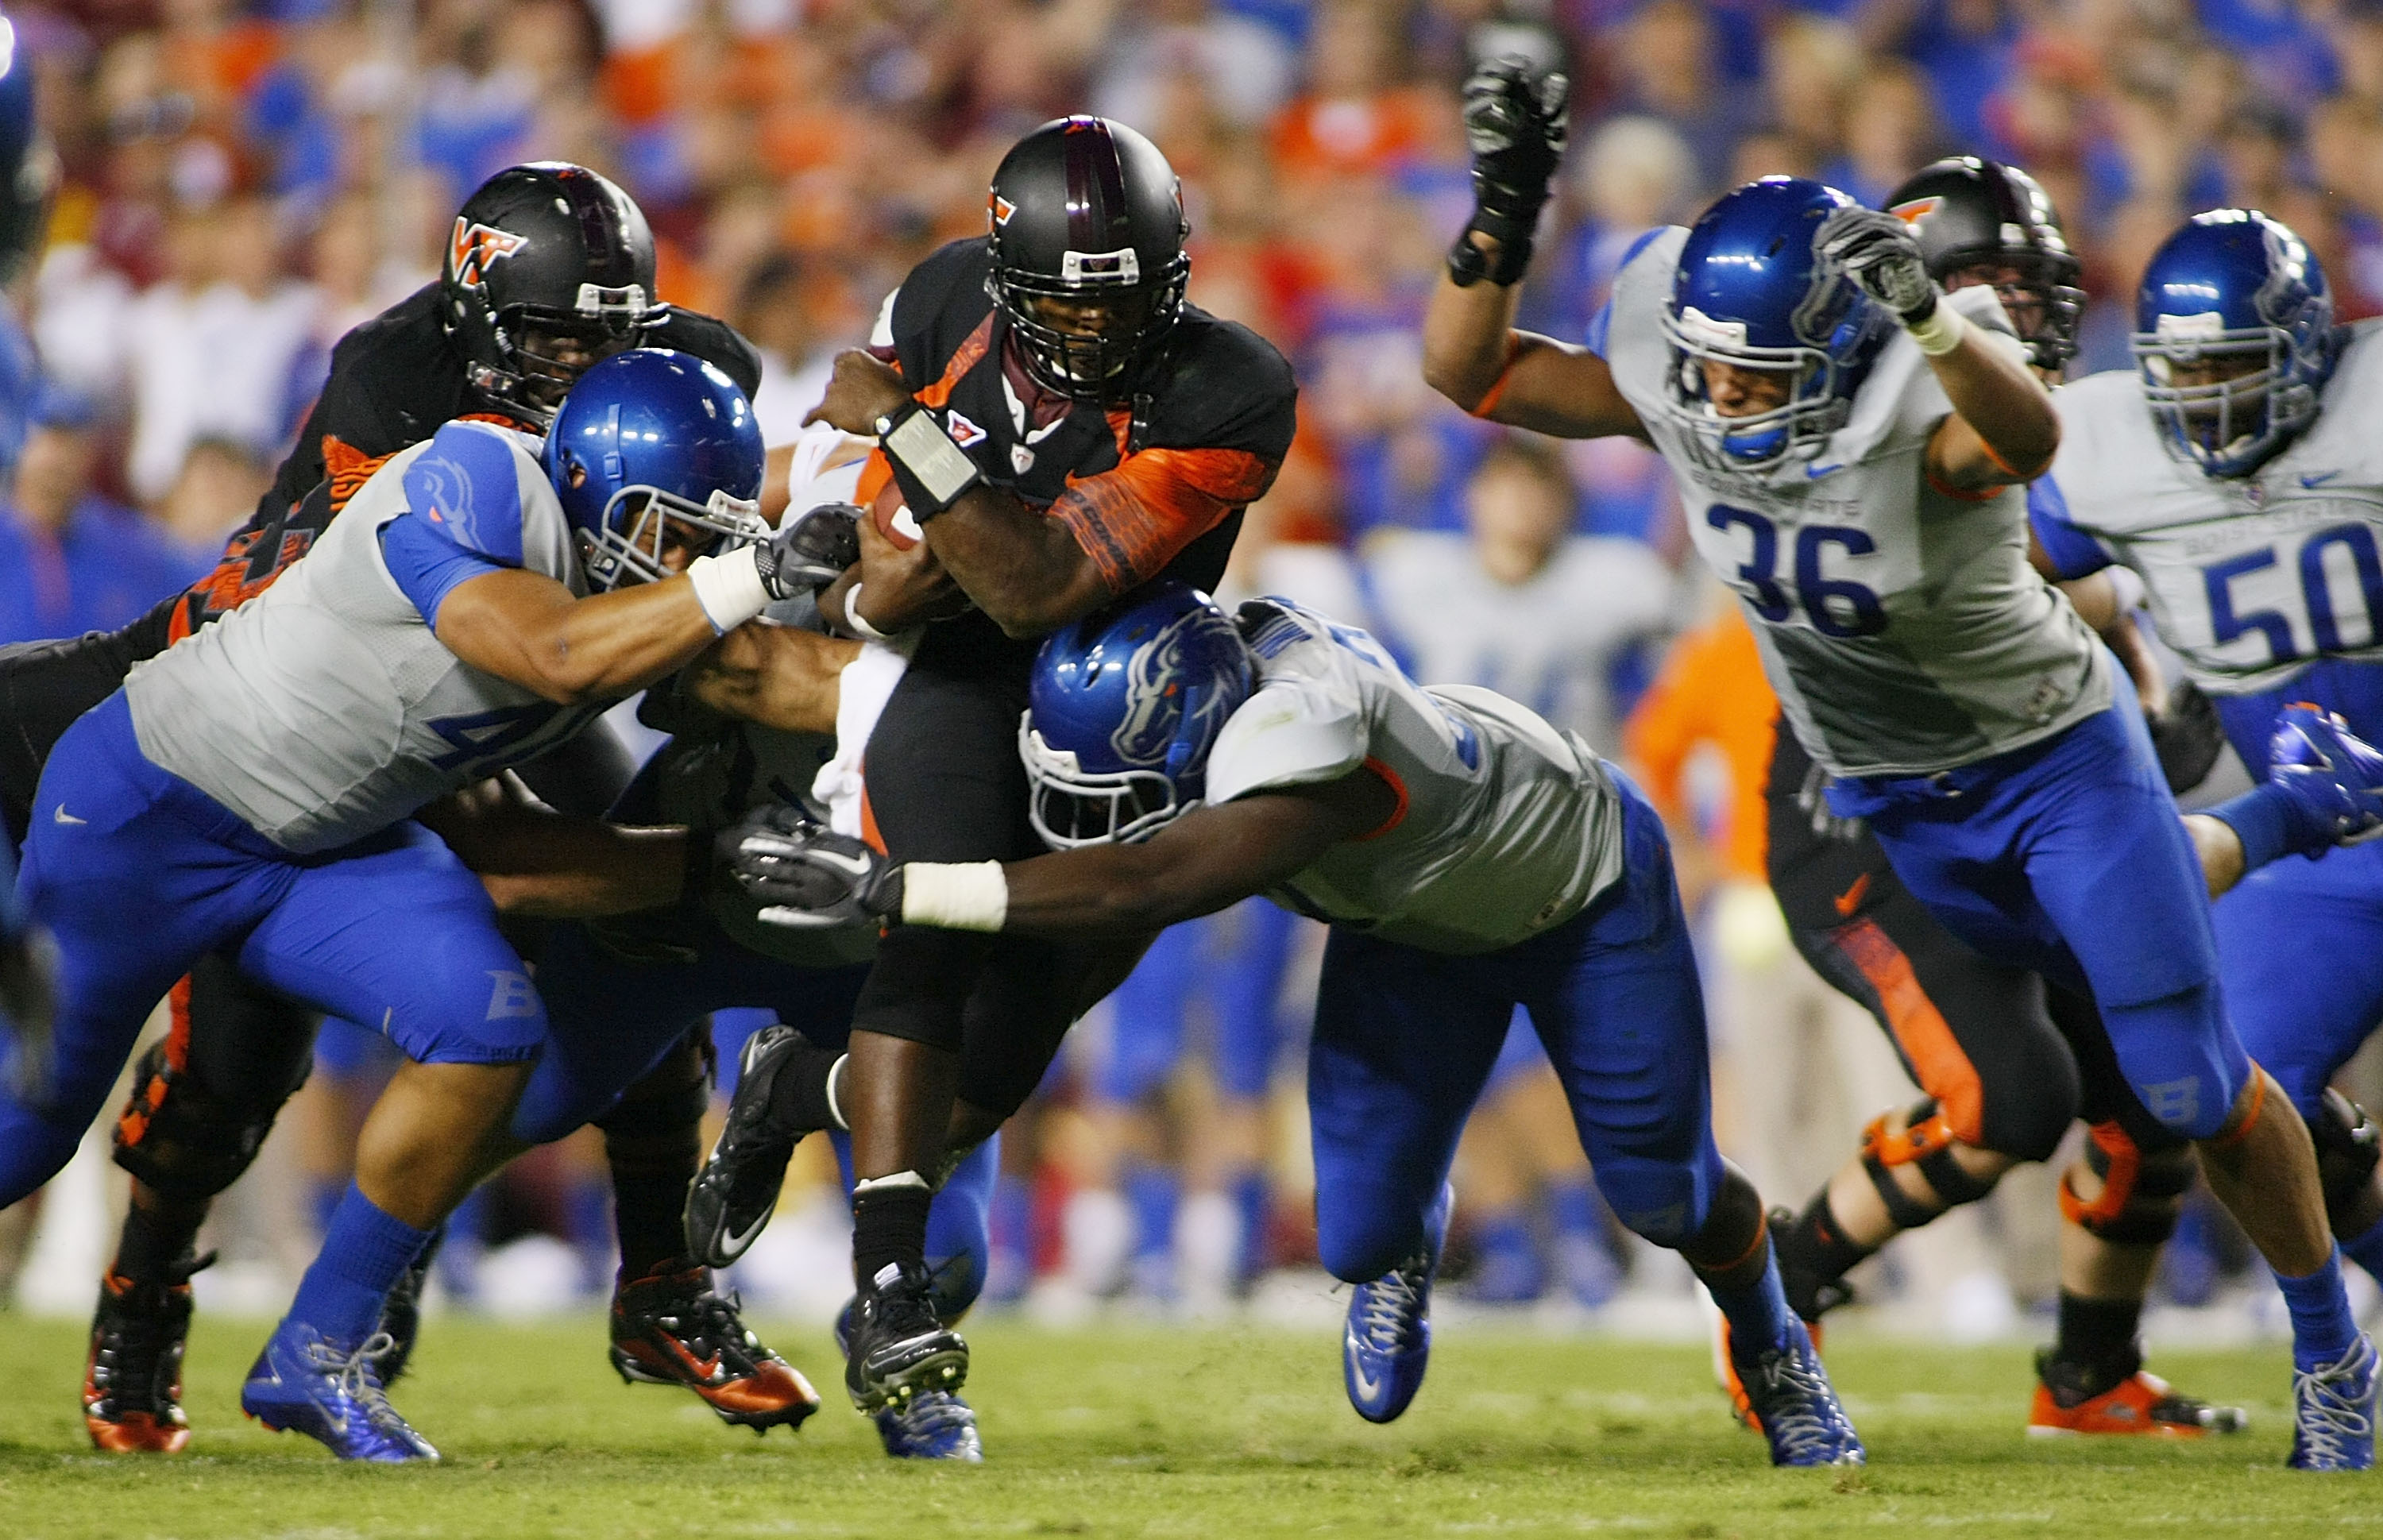 LANDOVER, MD - SEPTEMBER 06:  Quarterback #5 Tyrod Taylor of the Virginia Tech Hokies is tackled by defensive end #40 Tyrone Crawford, linebacker #33 Tommy Smith, and linebacker Aaron Tevis of the Boise State Broncos at FedExField on September 6, 2010 in